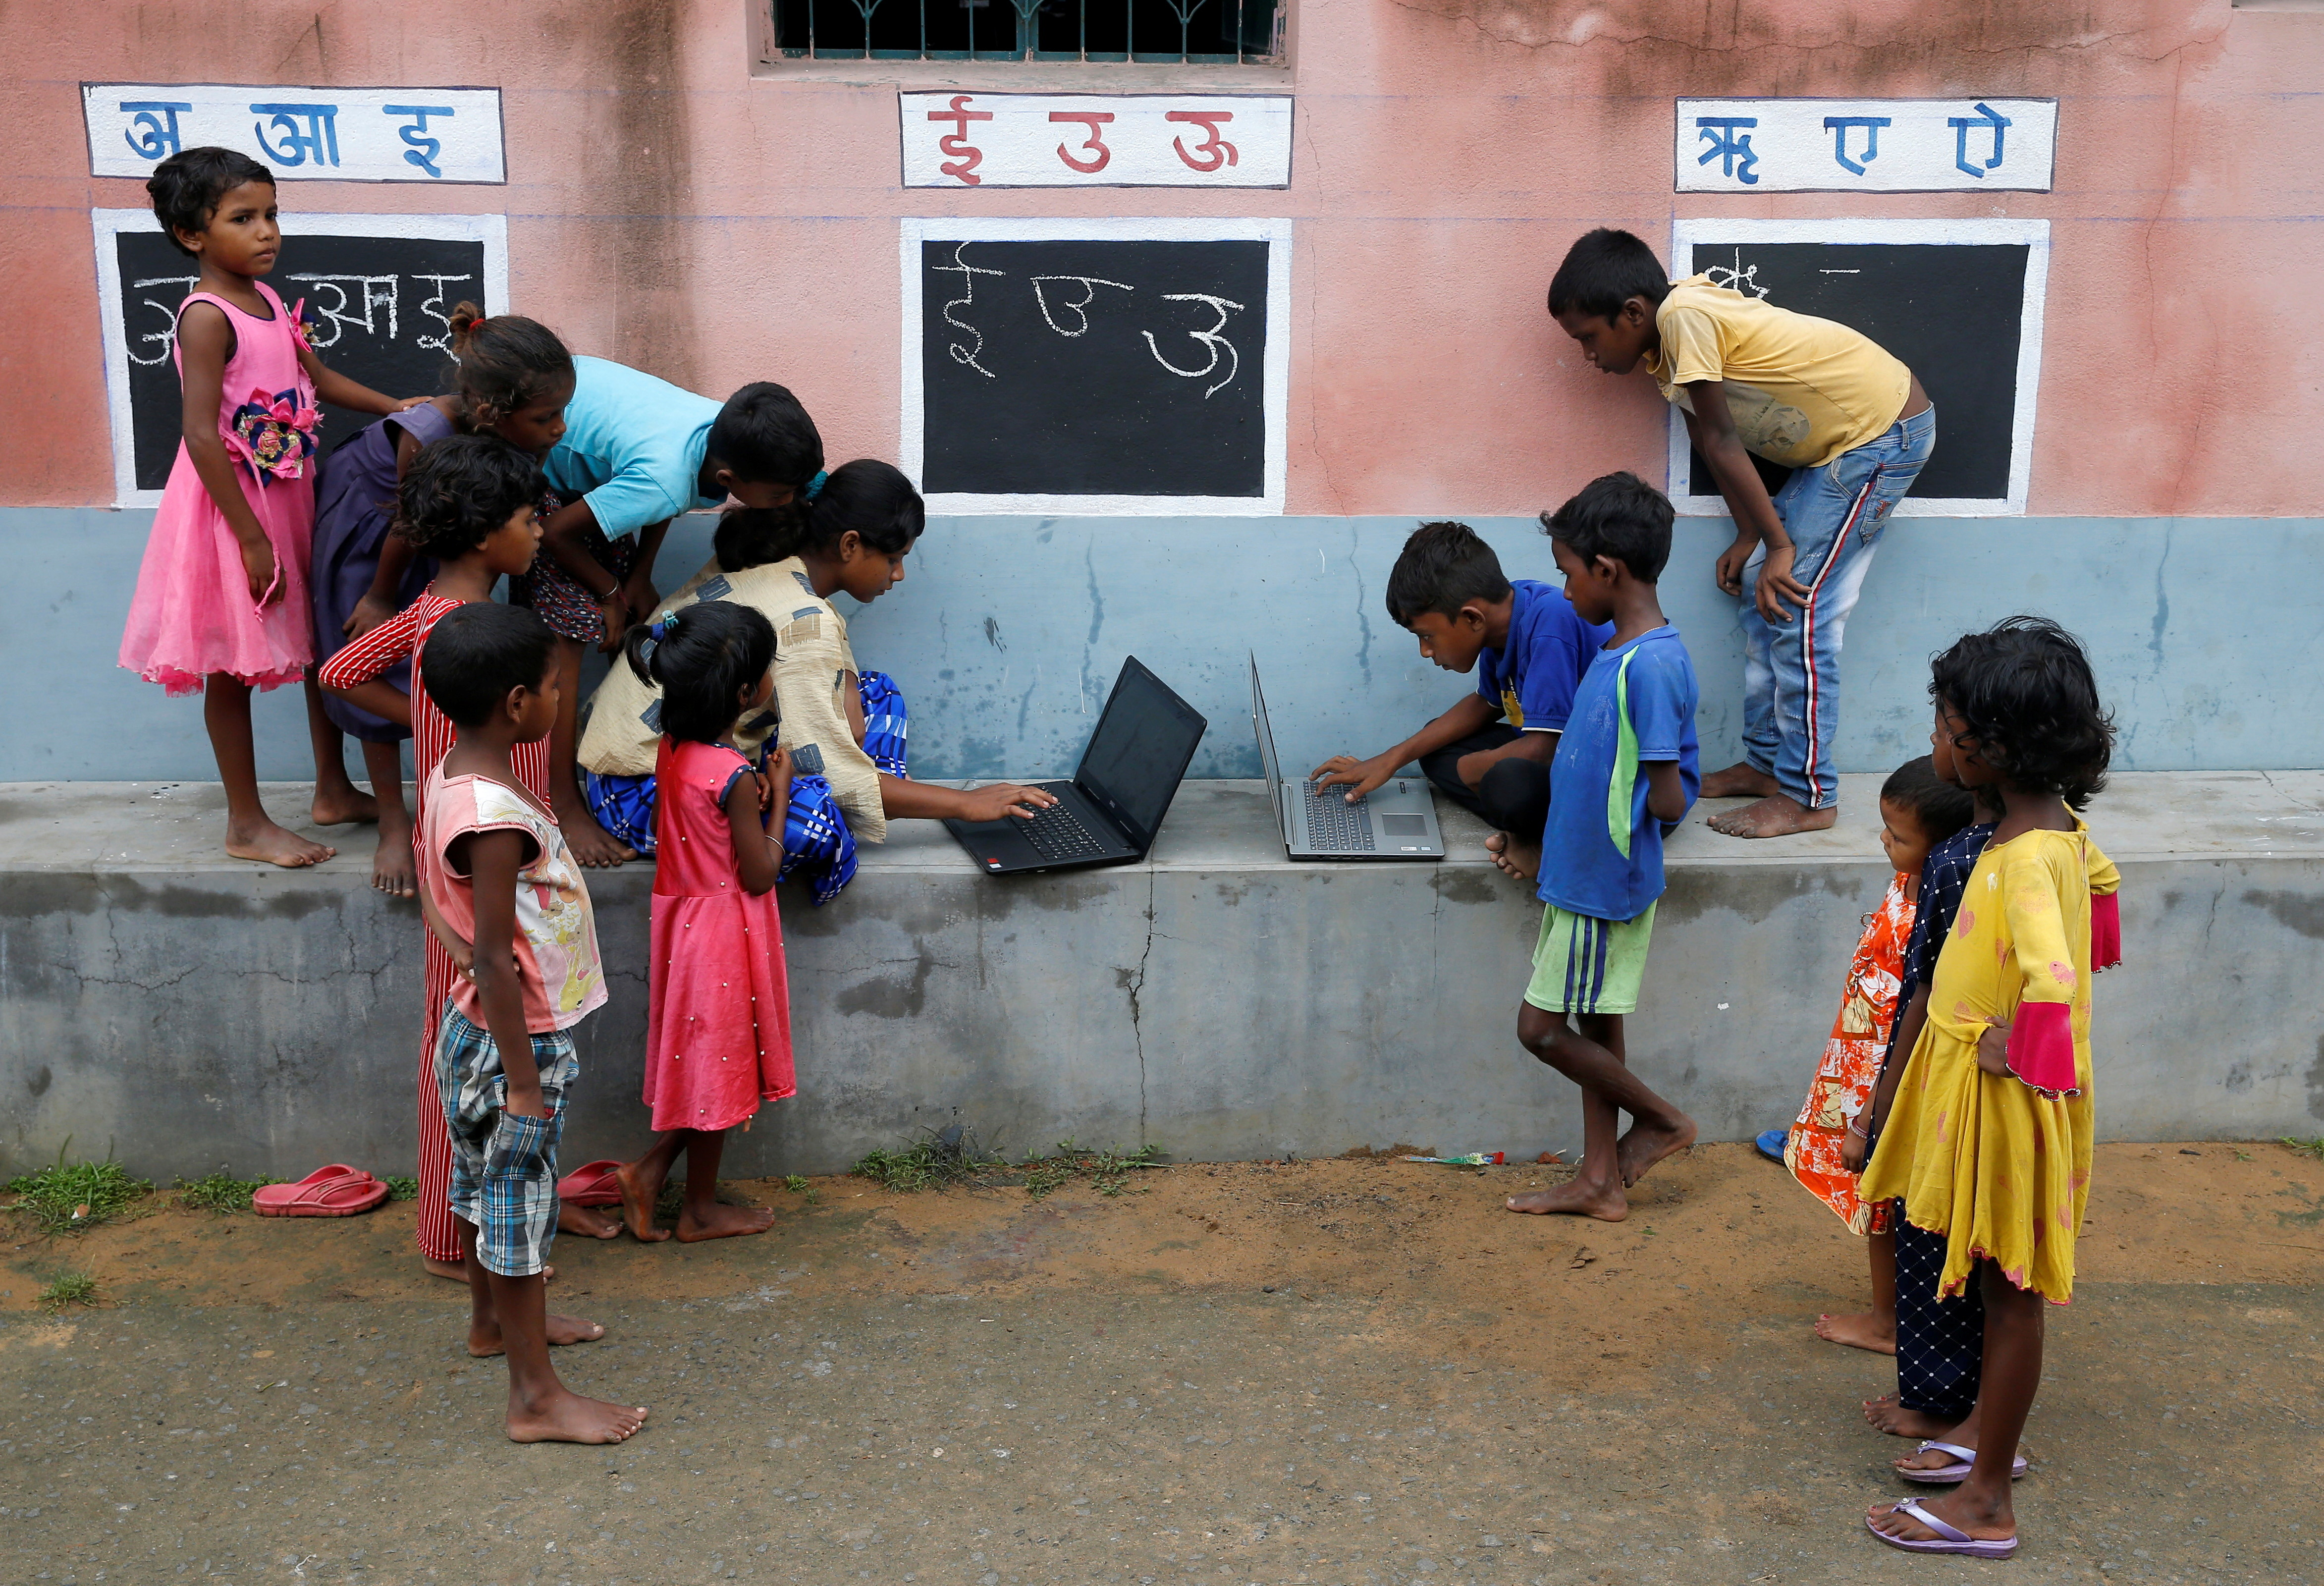 Children, who do not have access to internet facilities and gadgets, use laptops in an open-air class outside a house with the walls converted into black boards following the closure of their schools due to the coronavirus disease (COVID-19) outbreak, at Joba Attpara village in Paschim Bardhaman district in the eastern state of West Bengal, India, September 13, 2021. Picture taken September 13, 2021. REUTERS/Rupak De Chowdhuri - RC23PP98AG3Z